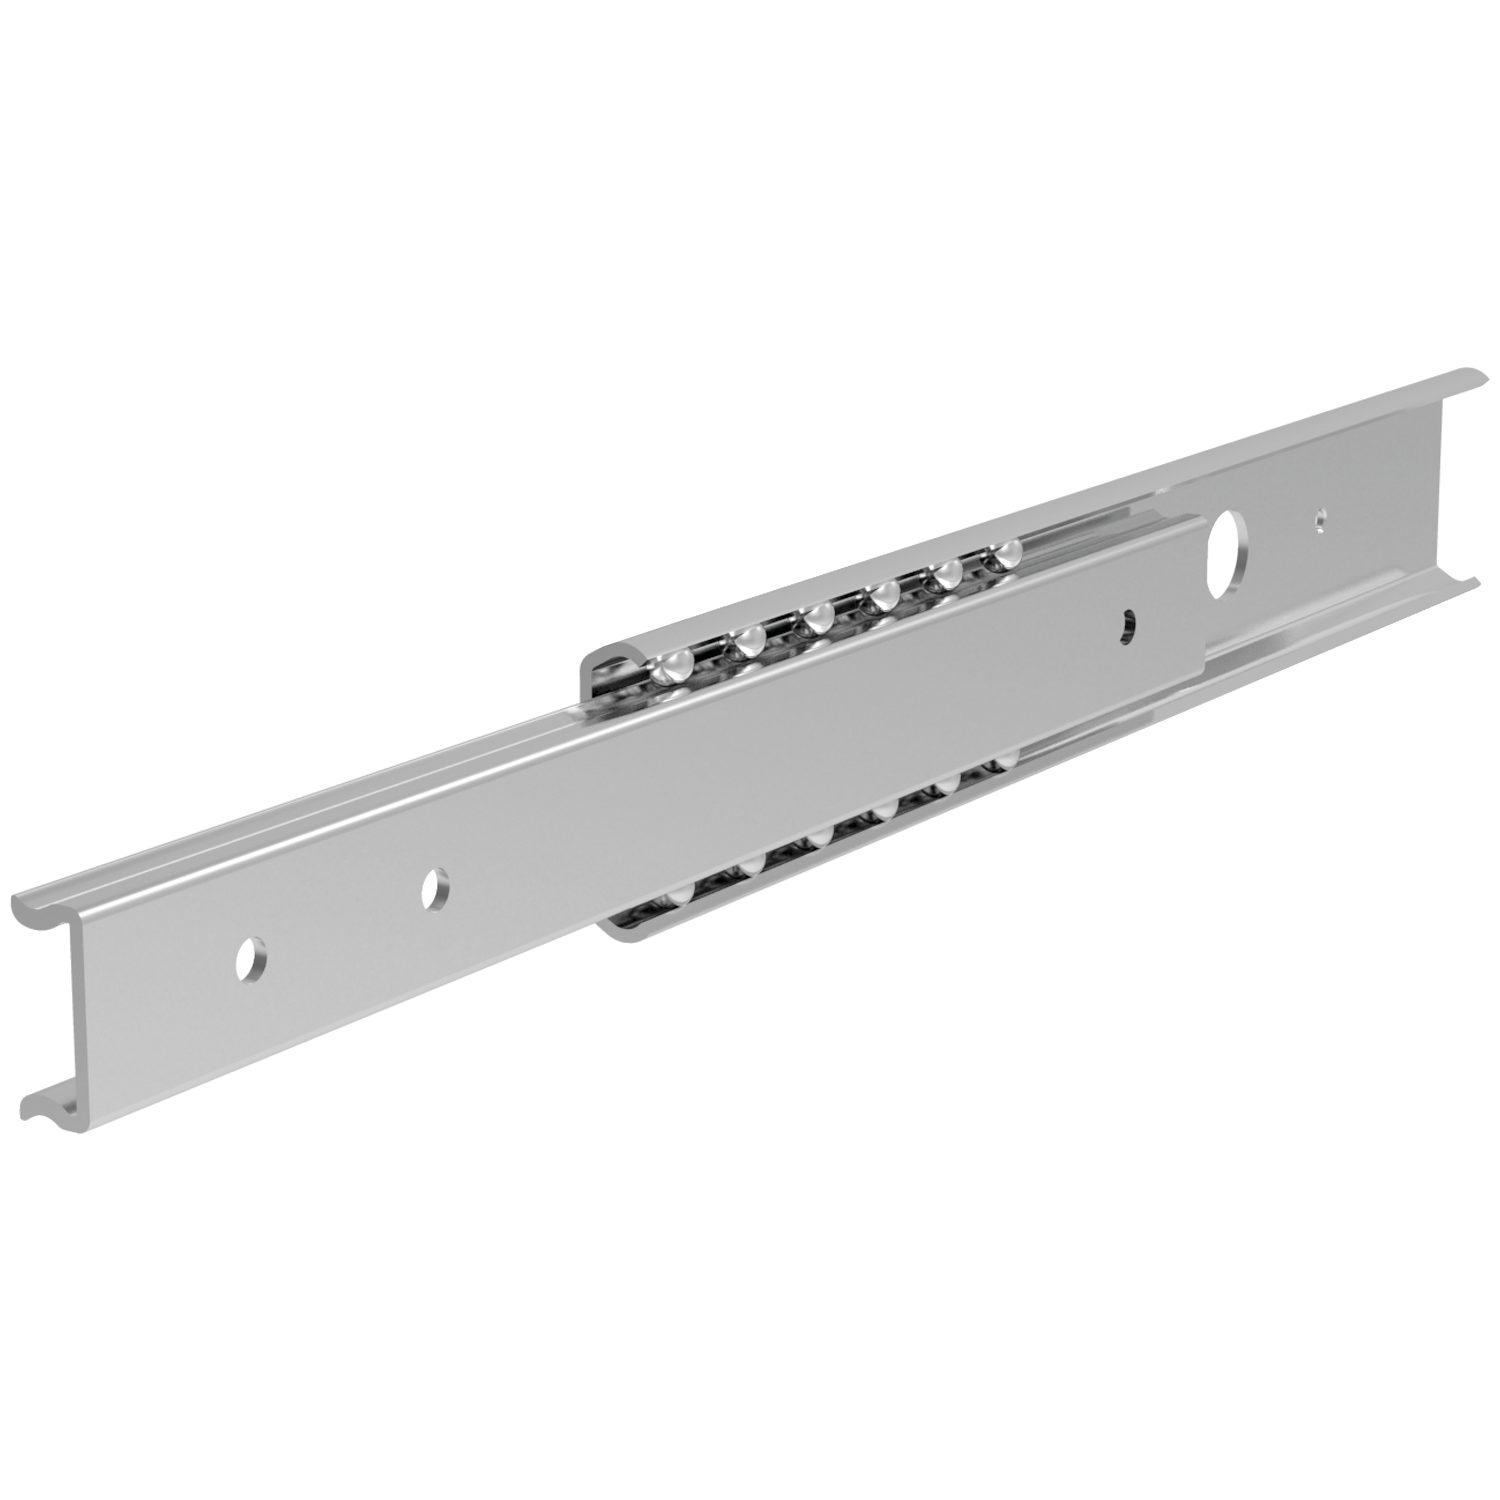 Soft-Close Drawer Slides Soft Close drawer slides, loads up to 70kg per pair.